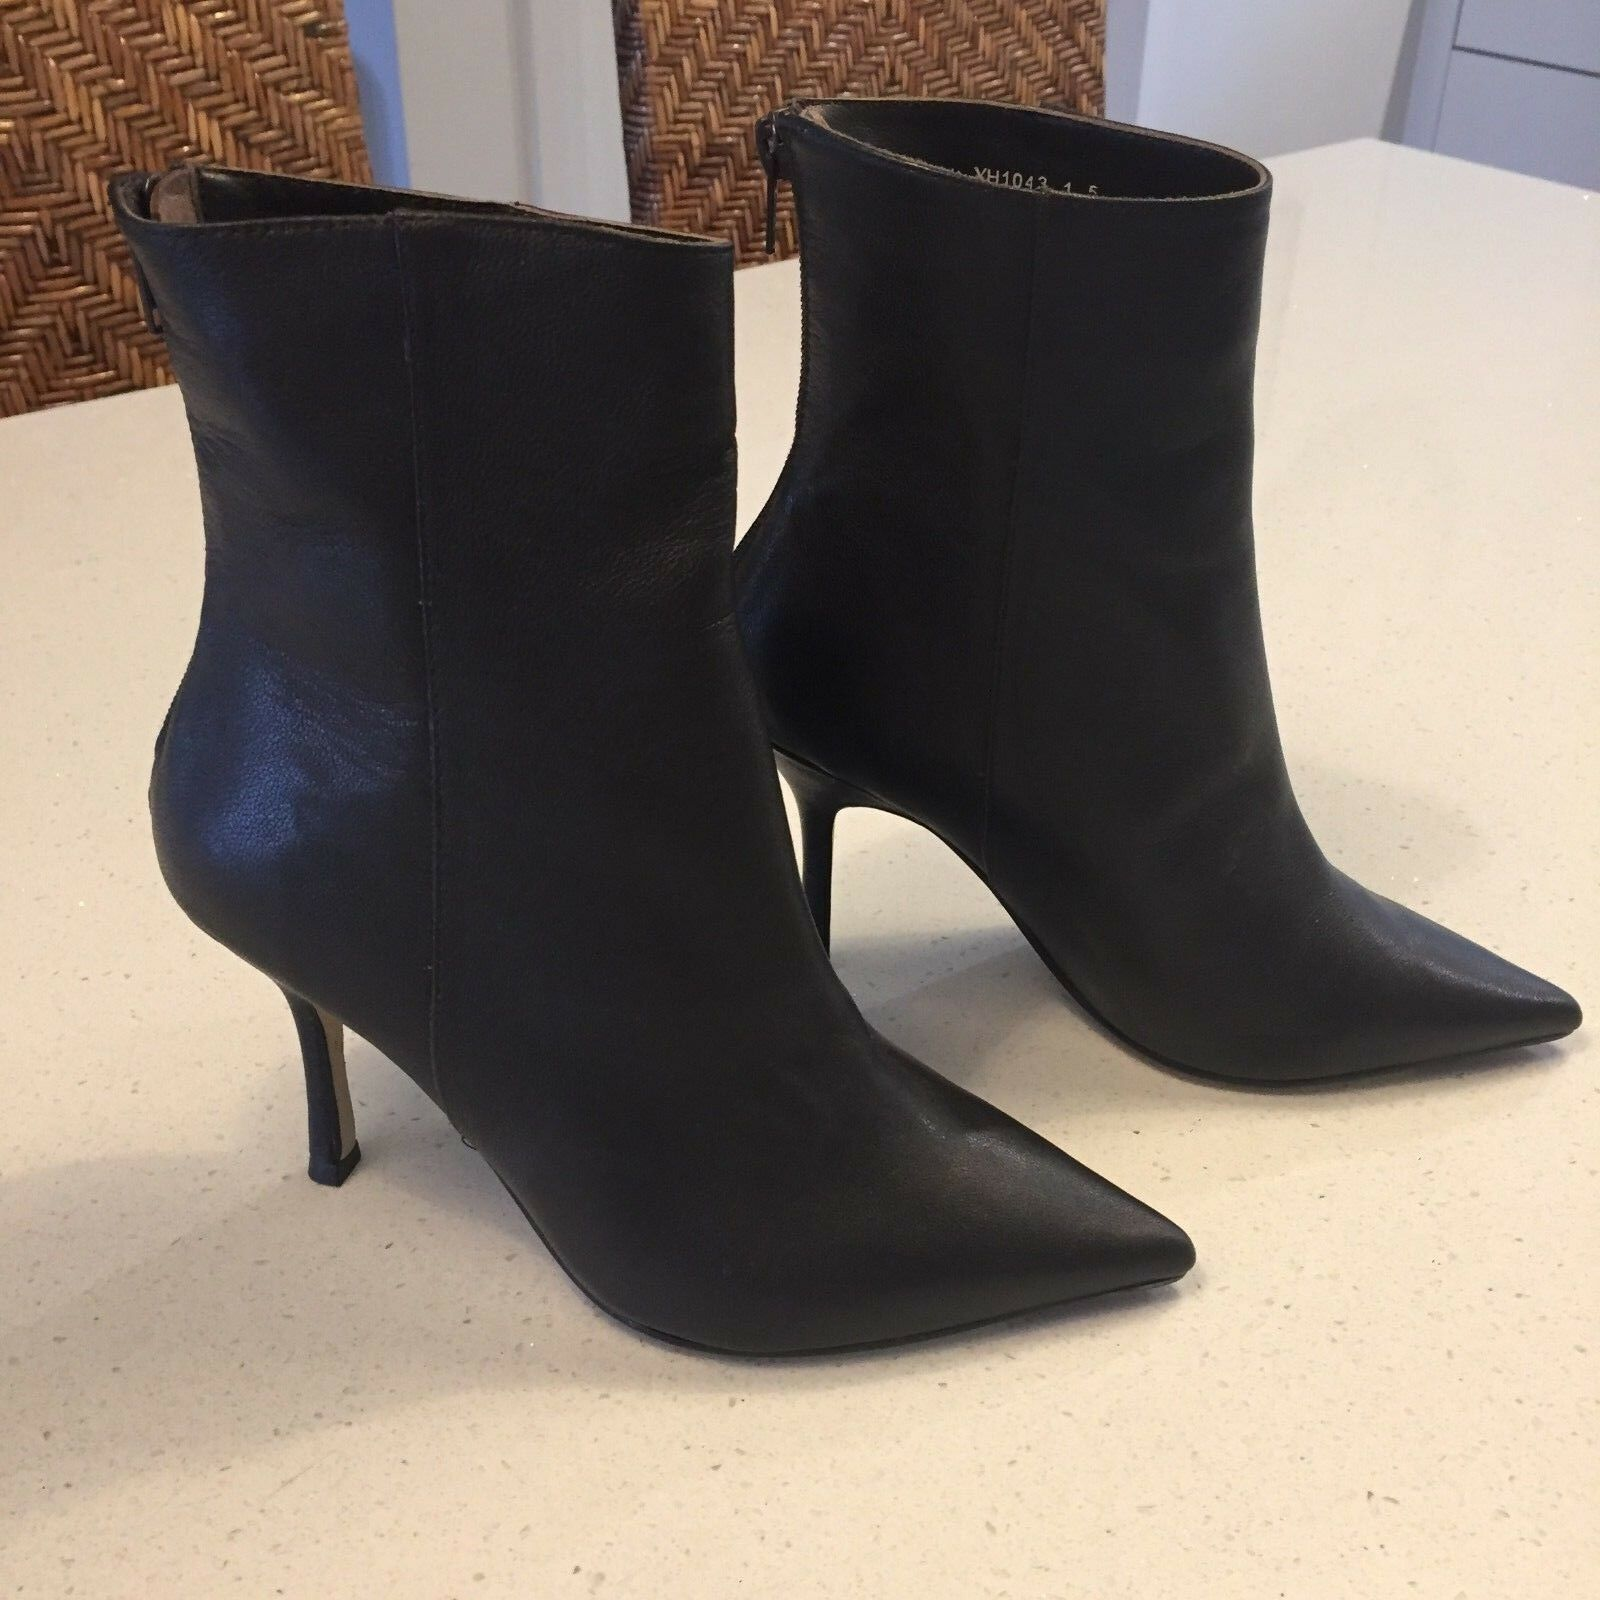 JOANNE MERCER BROWN LEATHER POINTY BACK ZIP ANKLE BOOTS SIZE 5 BNWT (J80300)